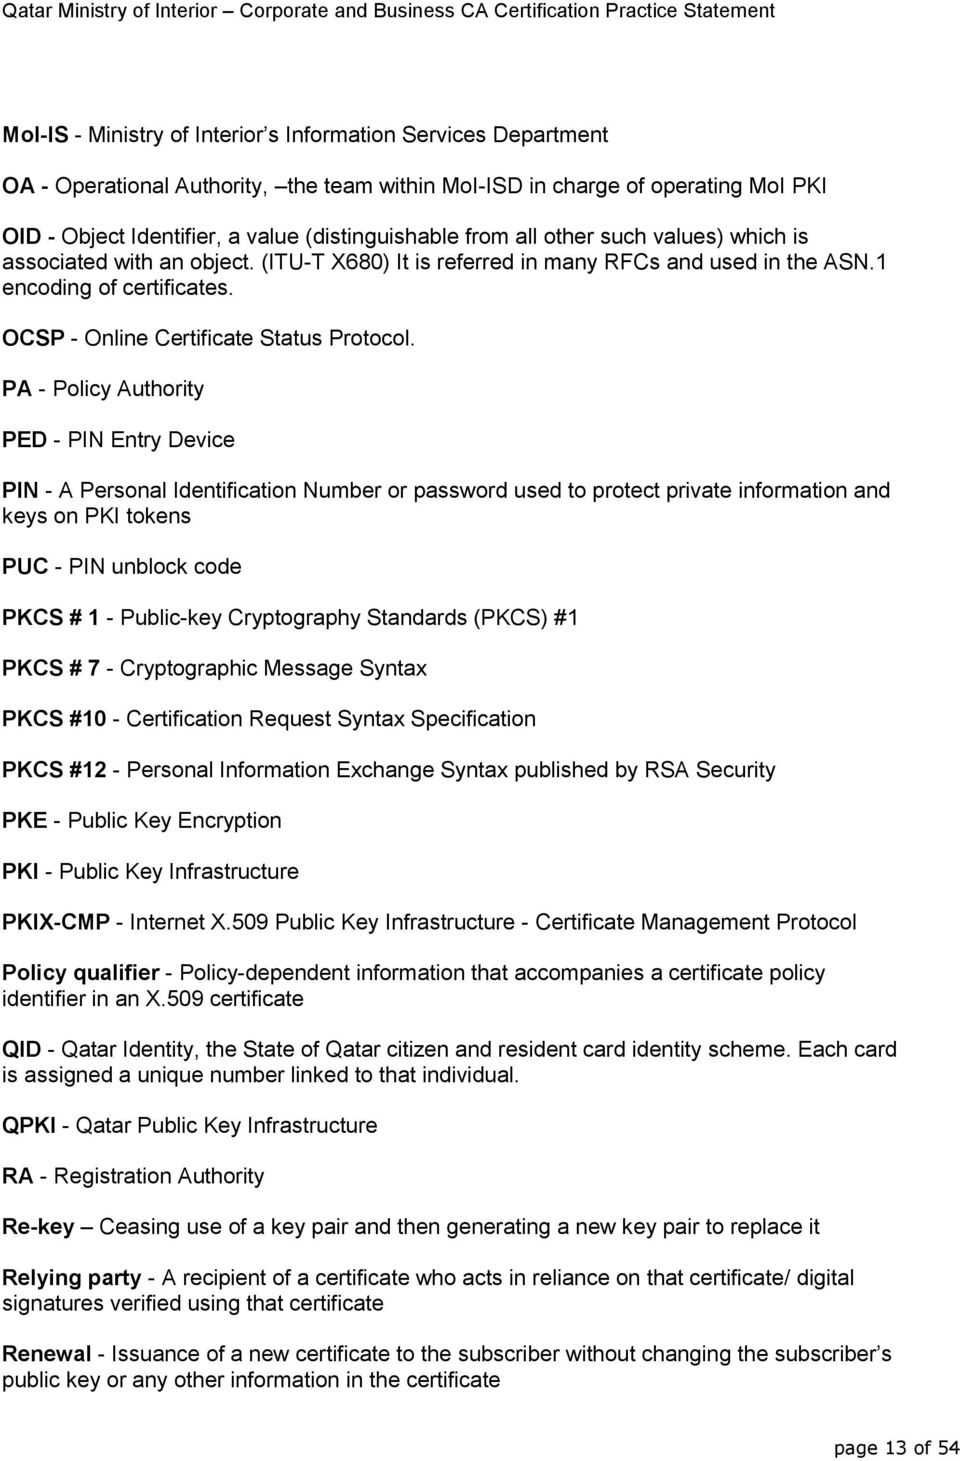 PA - Policy Authority PED - PIN Entry Device PIN - A Personal Identification Number or password used to protect private information and keys on PKI tokens PUC - PIN unblock code PKCS # 1 - Public-key